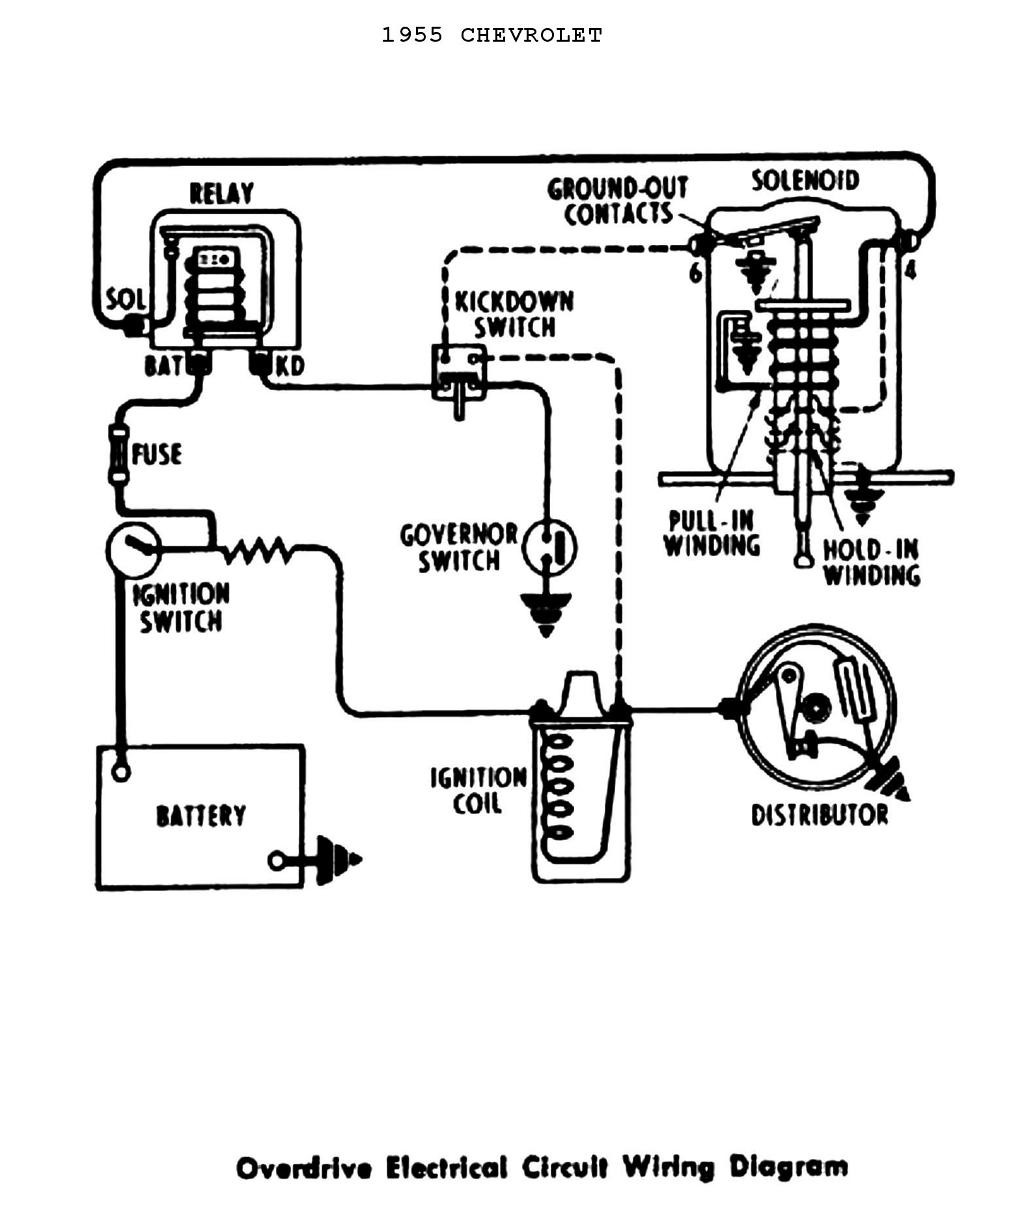 gm hei distributor wiring schematic Download Ford Ignition Coil Wiring Diagram Unique 1954 ford Overdrive DOWNLOAD Wiring Diagram